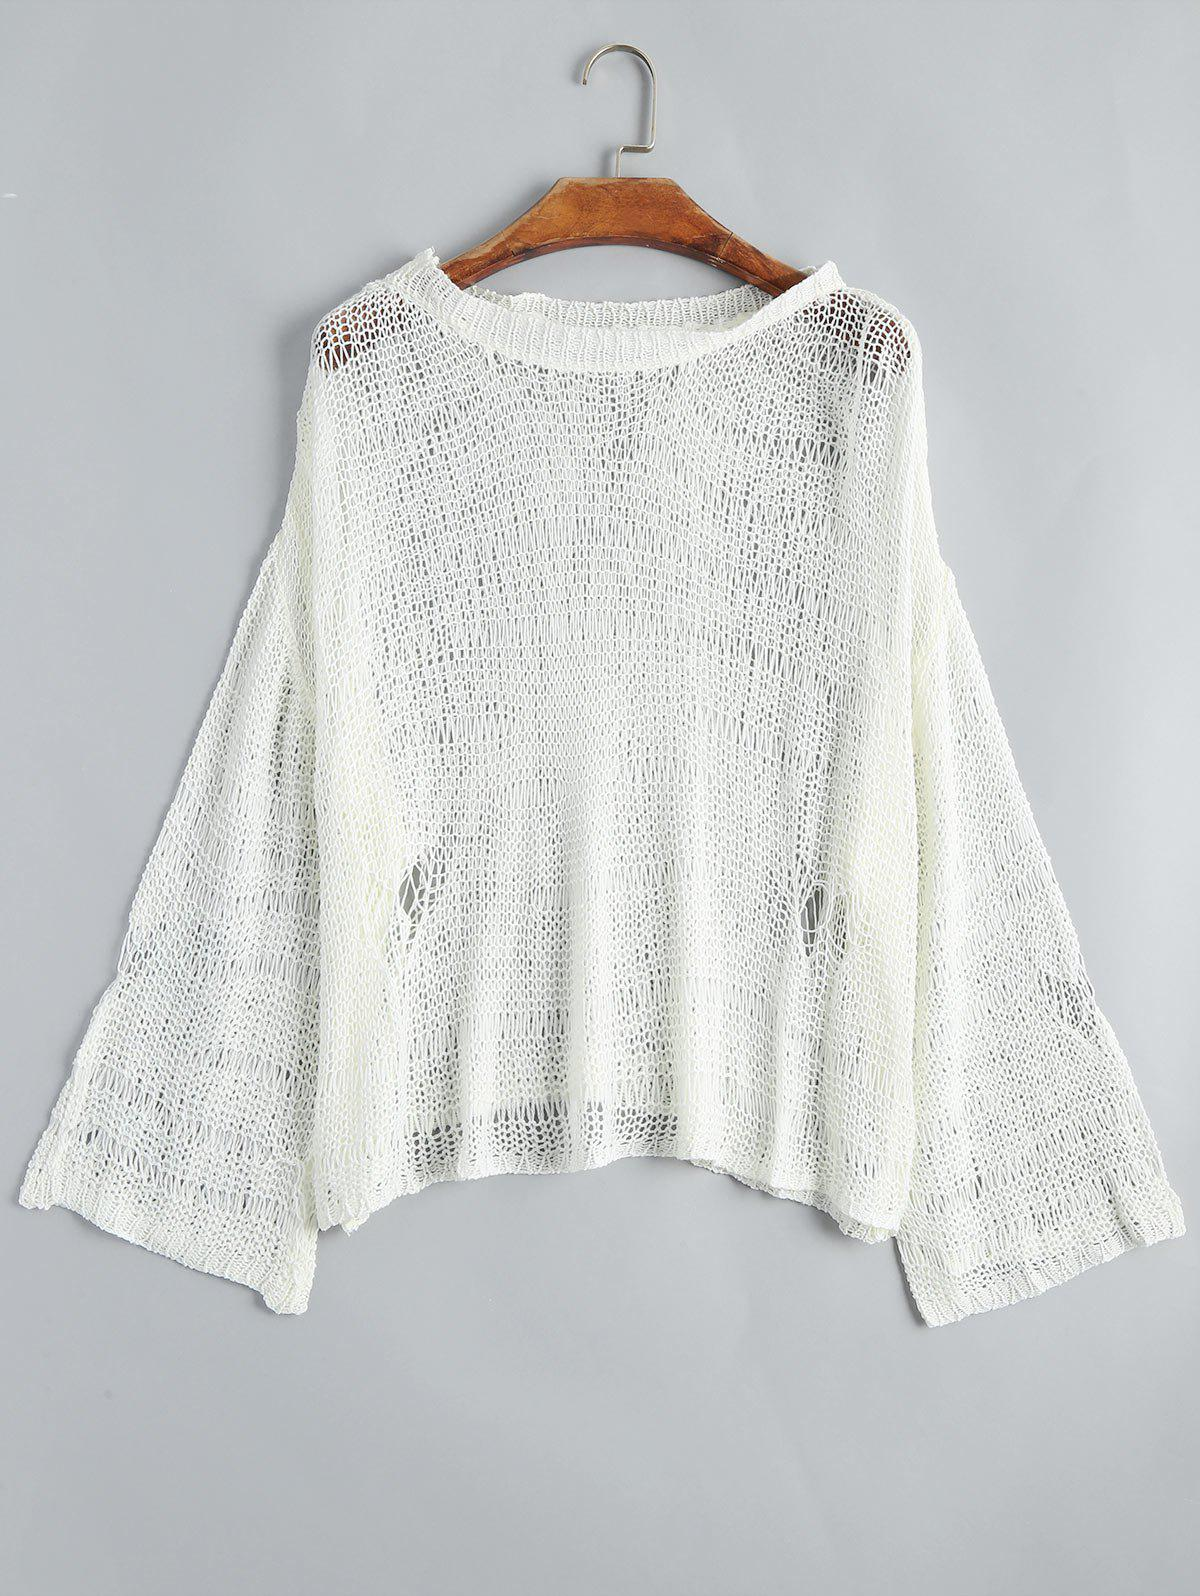 Drop Shoulder Hollow Out Knitted Top 223362901